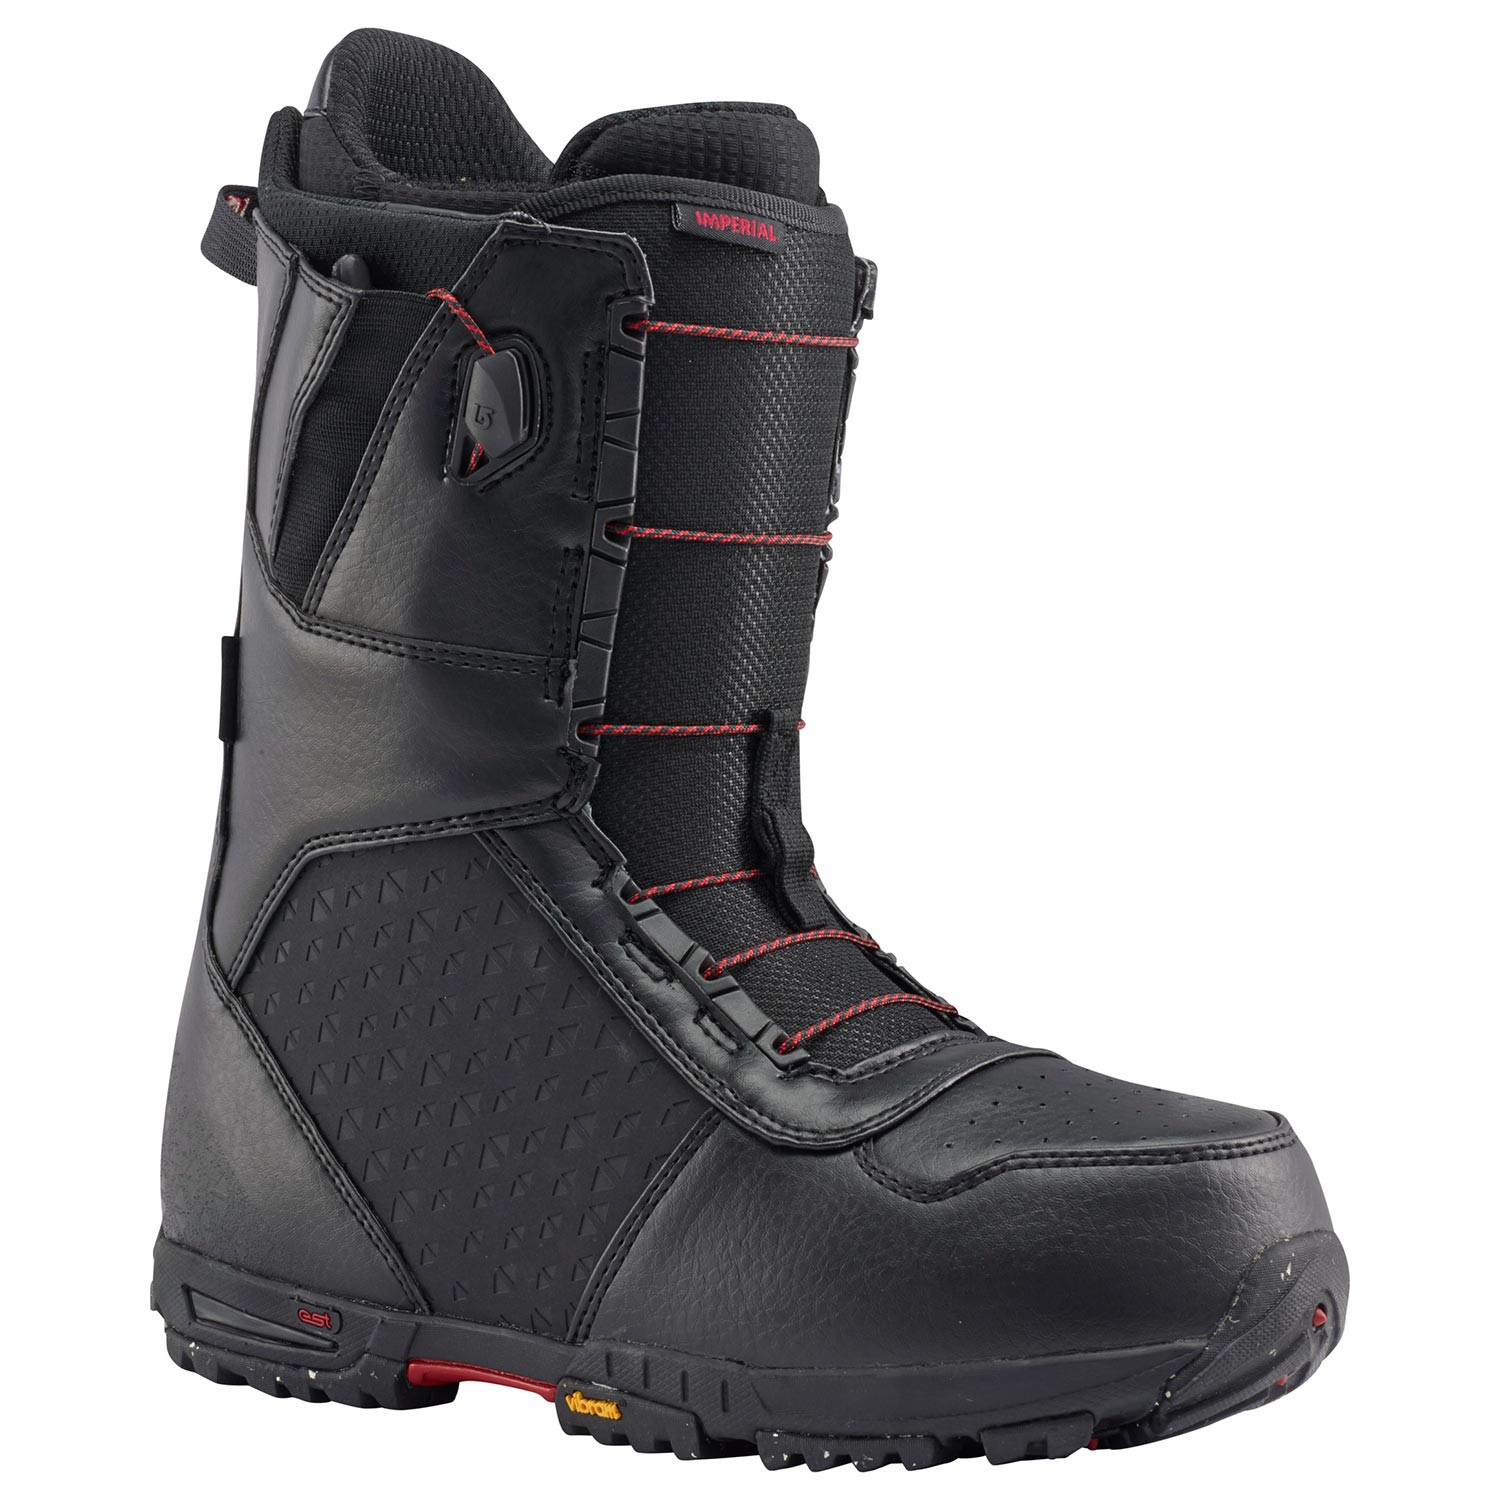 Boty Burton Imperial black/red